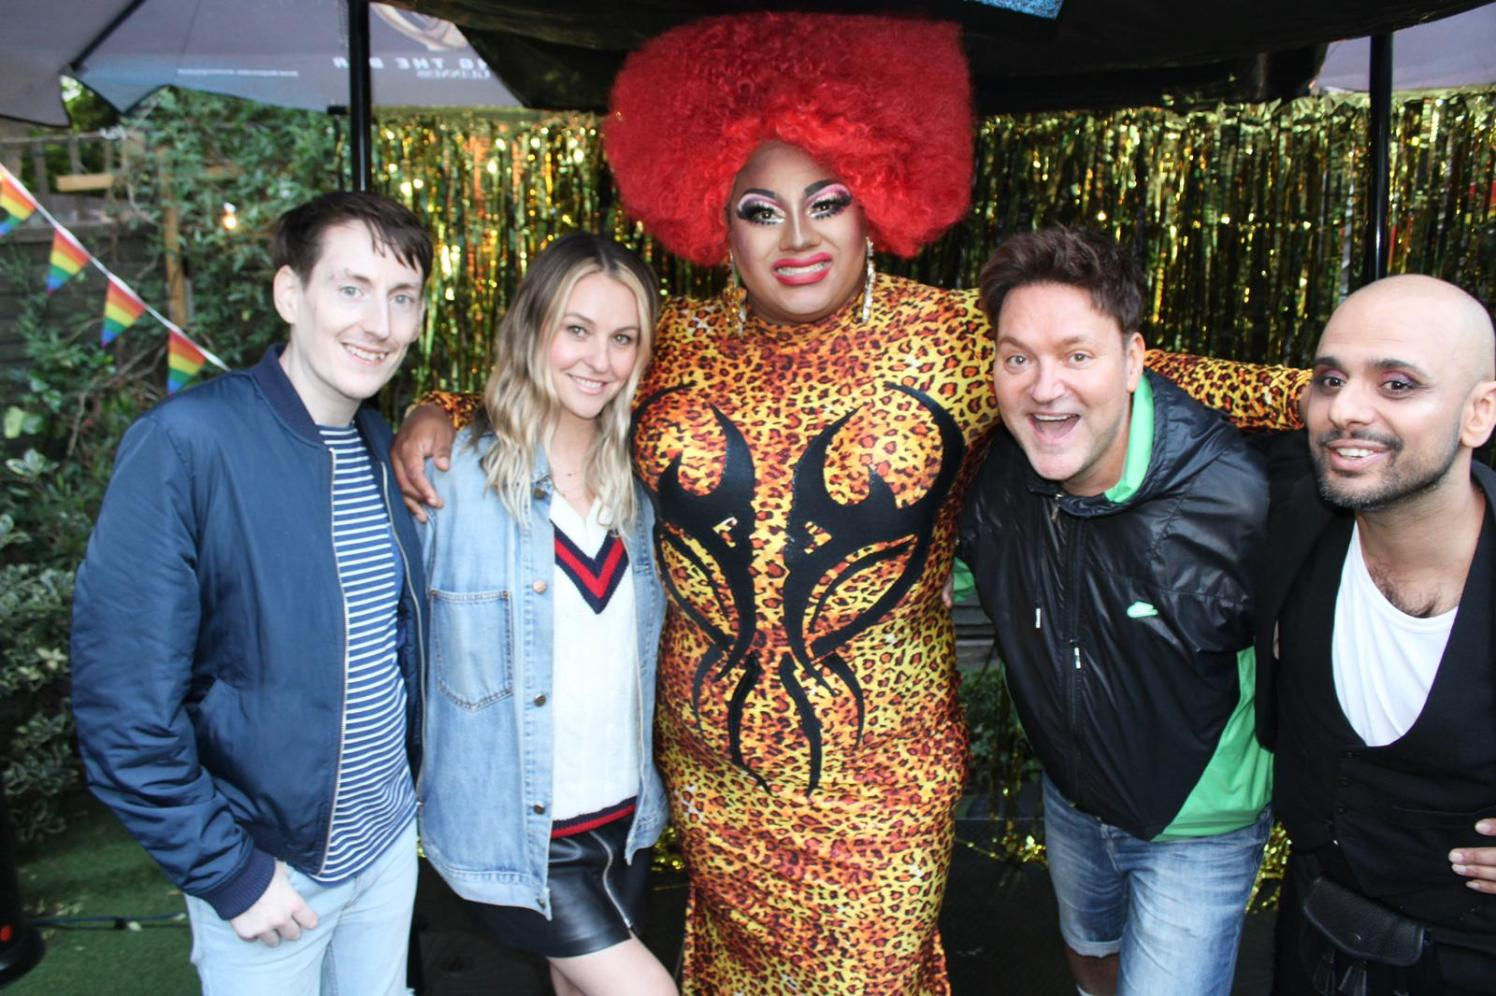 West London Queer Project - Aubrey in group photo